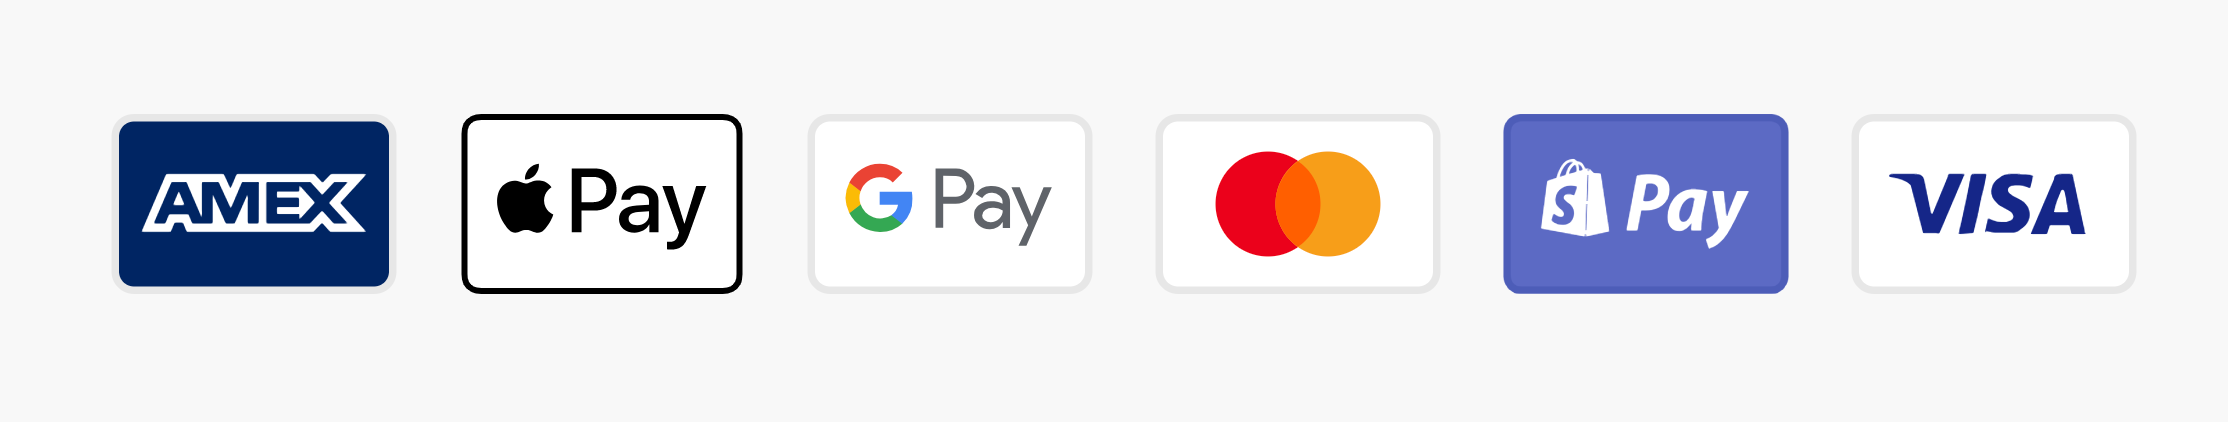 files/Footer_payment_icons.png